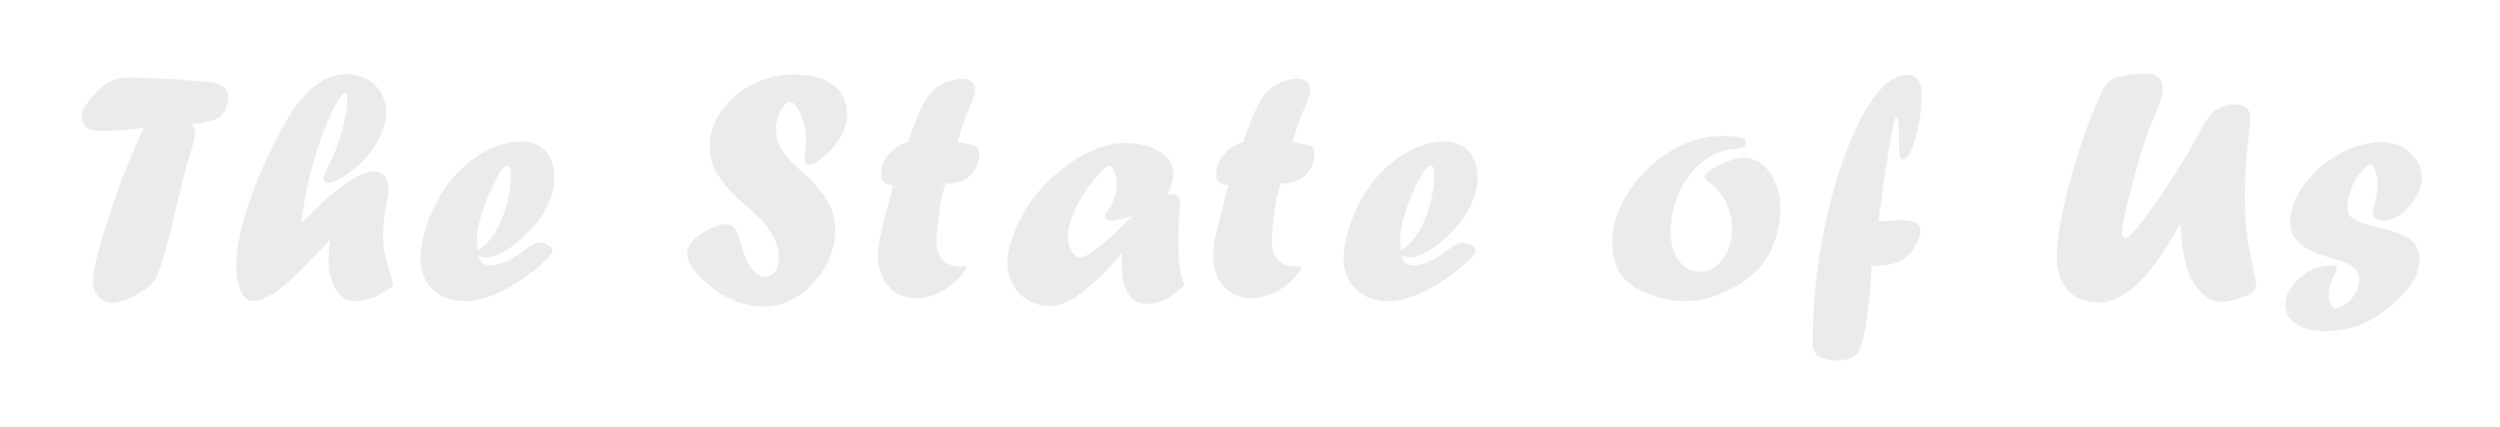 The State of Us - text logo.png